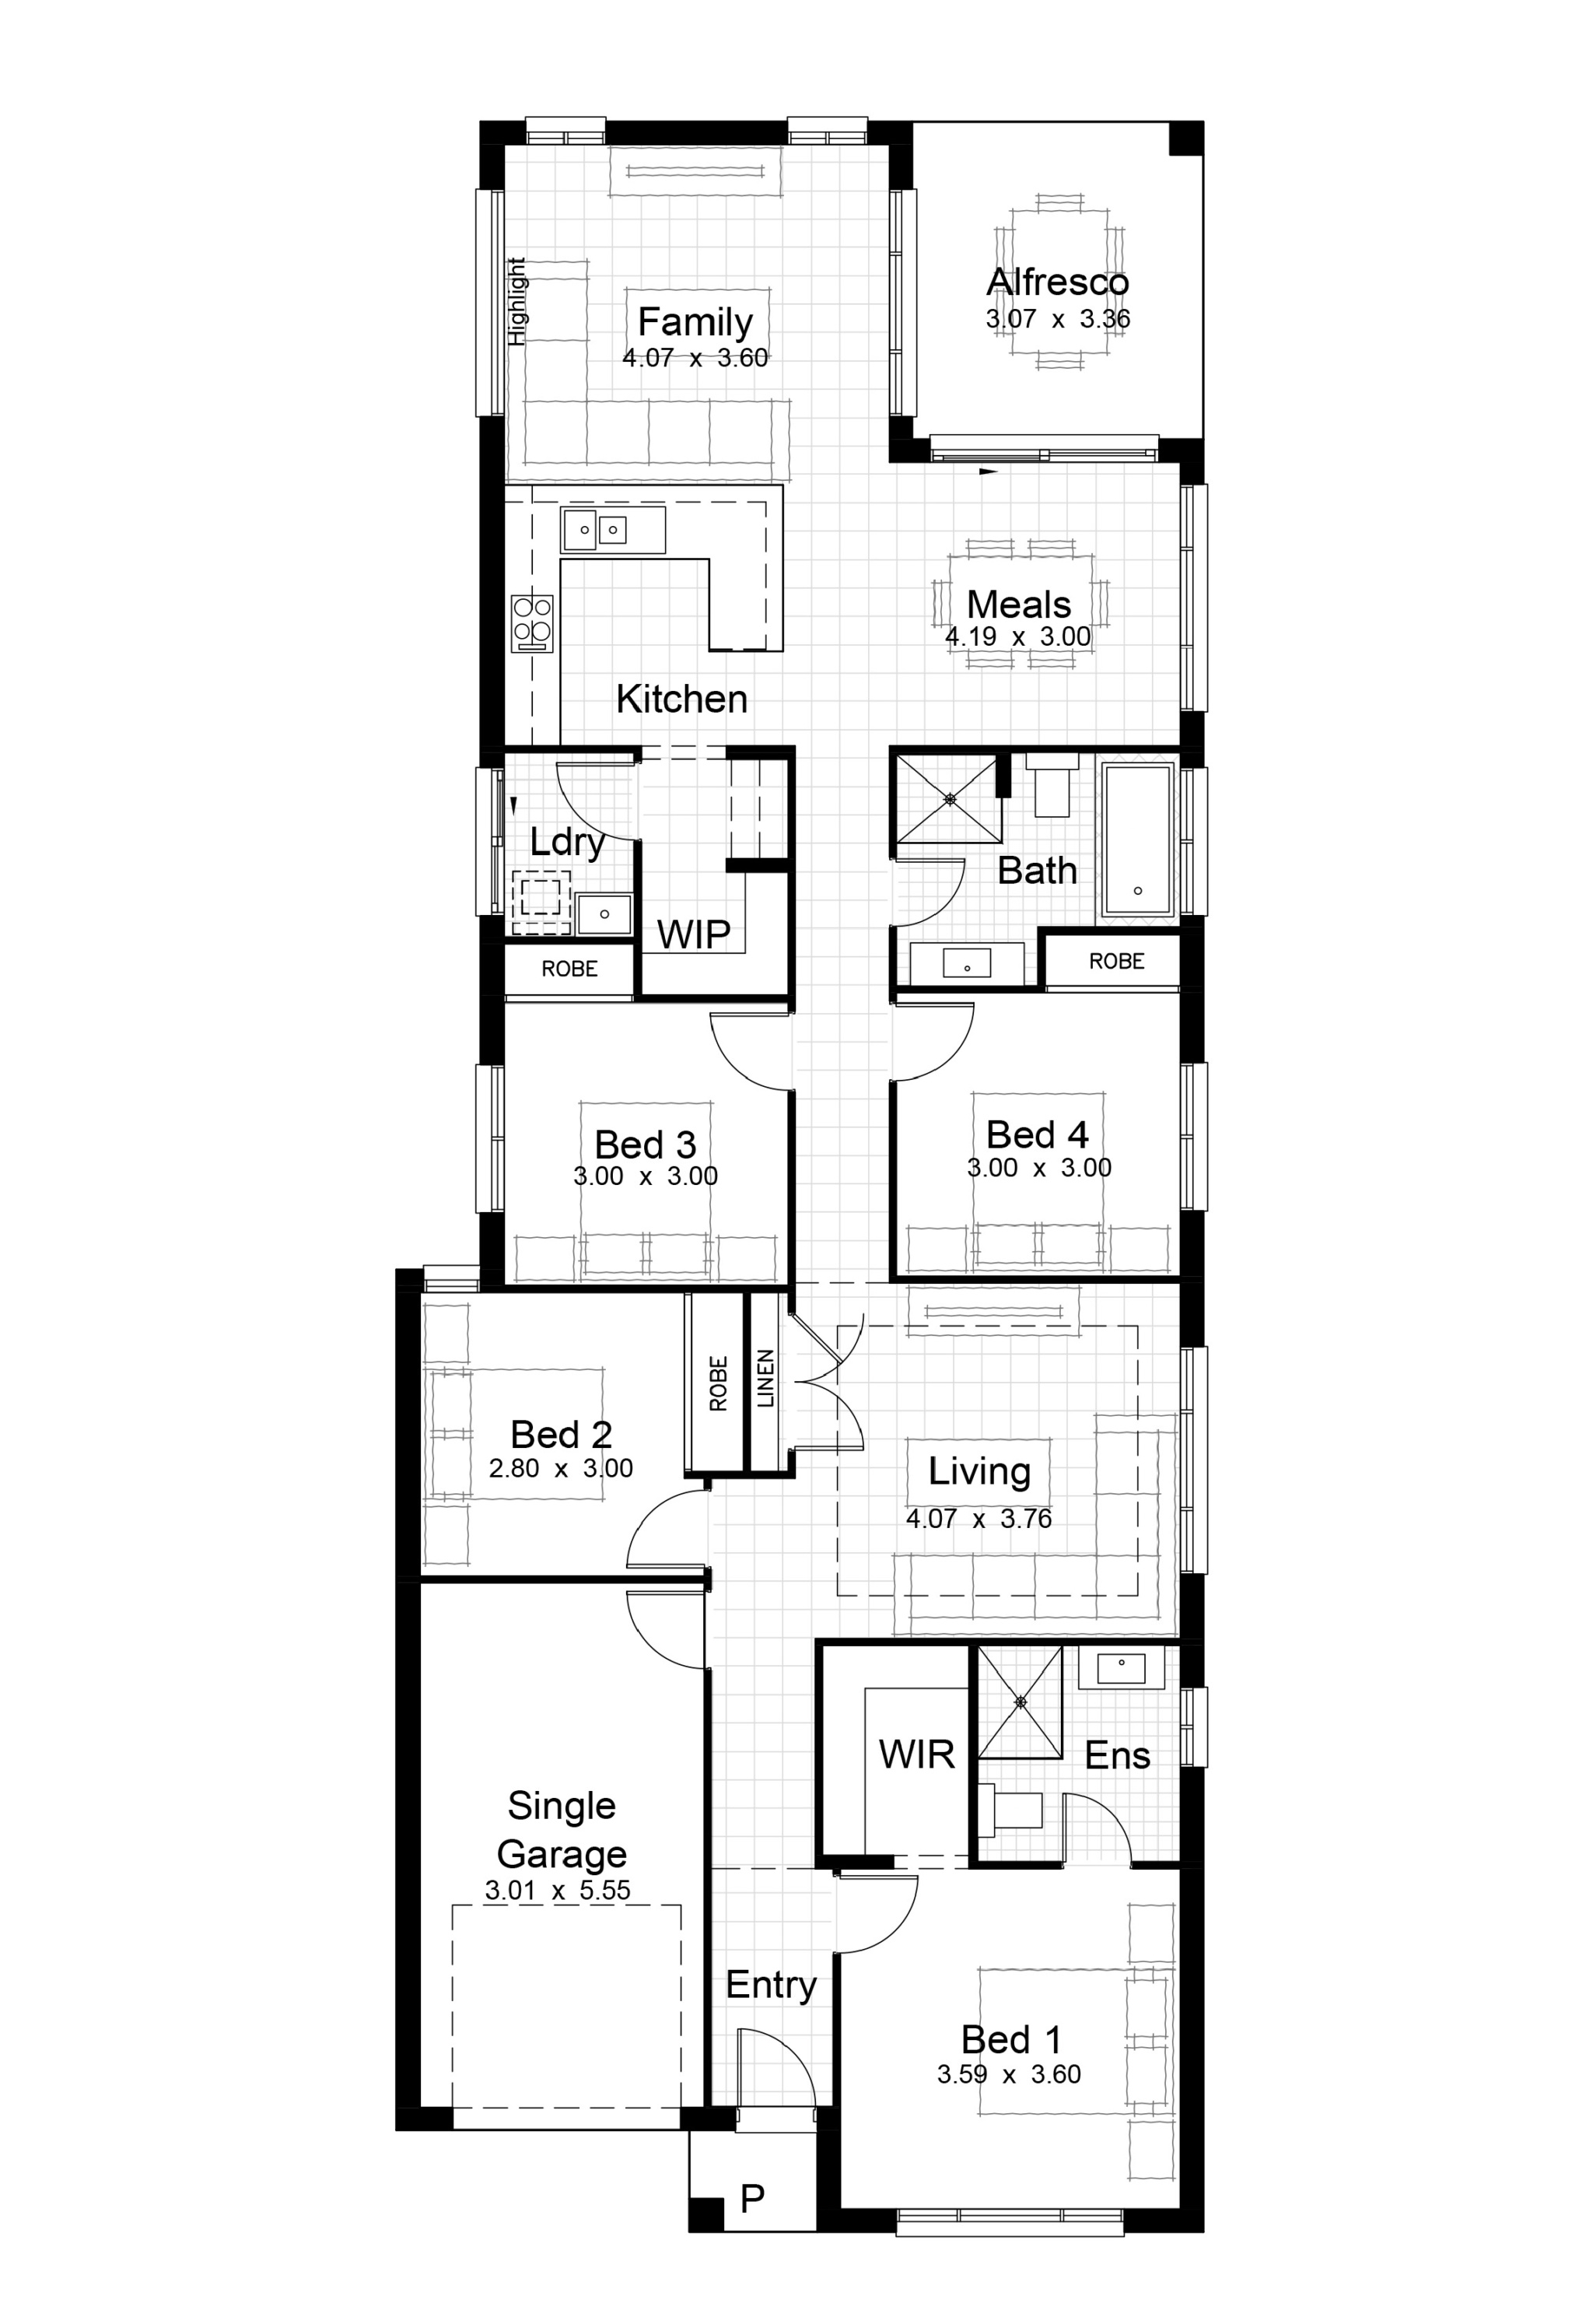 Single Level Plan_Lot 45